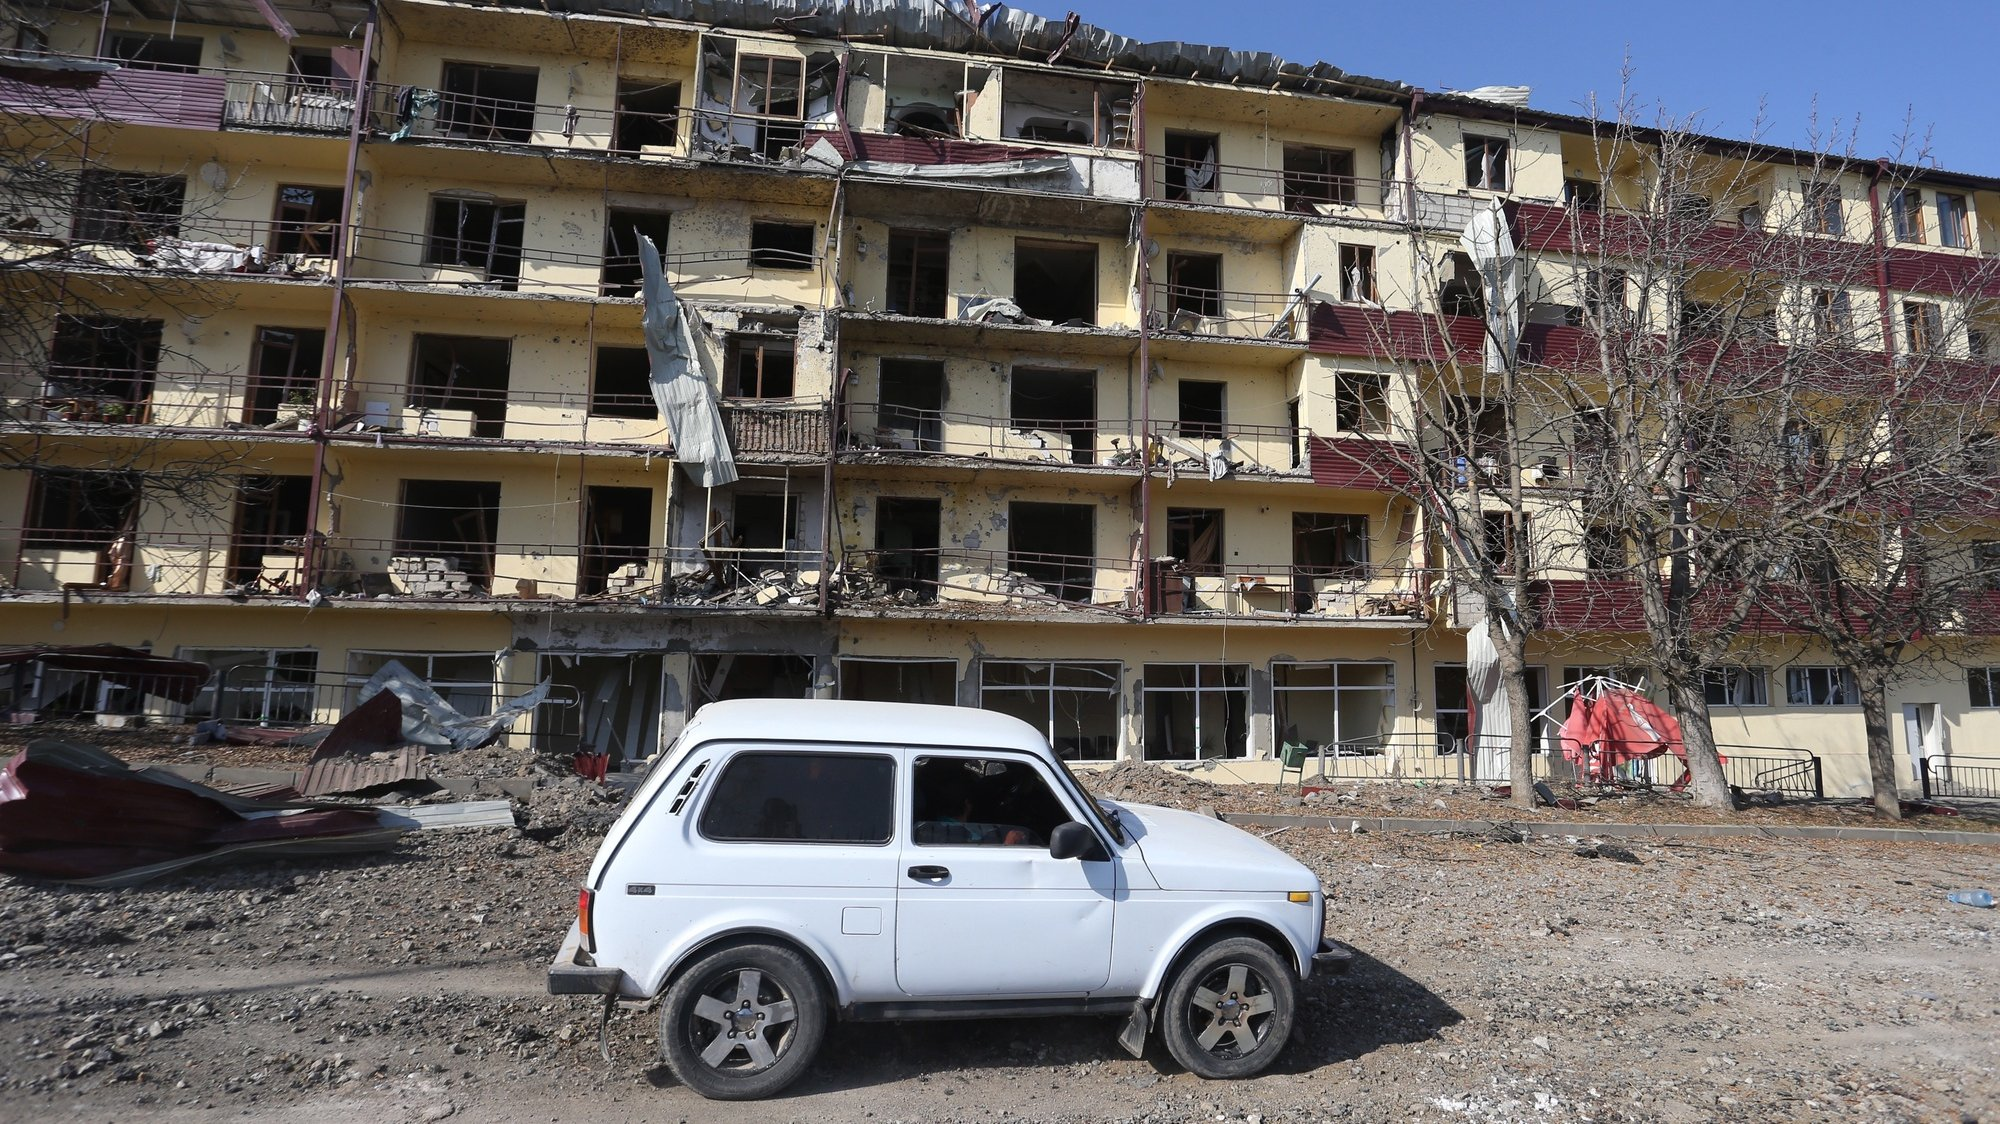 epa08782820 A view of a damaged house in the town of Shushi (another spelling Shusha) in the Nagorno-Karabakh Republic, 29 October 2020, after allegedly Azerbaijani shelling. Armed clashes erupted on 27 September 2020 in the simmering territorial conflict between Azerbaijan and Armenia over the Nagorno-Karabakh territory along the contact line of the self-proclaimed Nagorno-Karabakh Republic (also known as Artsakh).  EPA/HAYK BAGHDASARYAN /PHOTOLURE